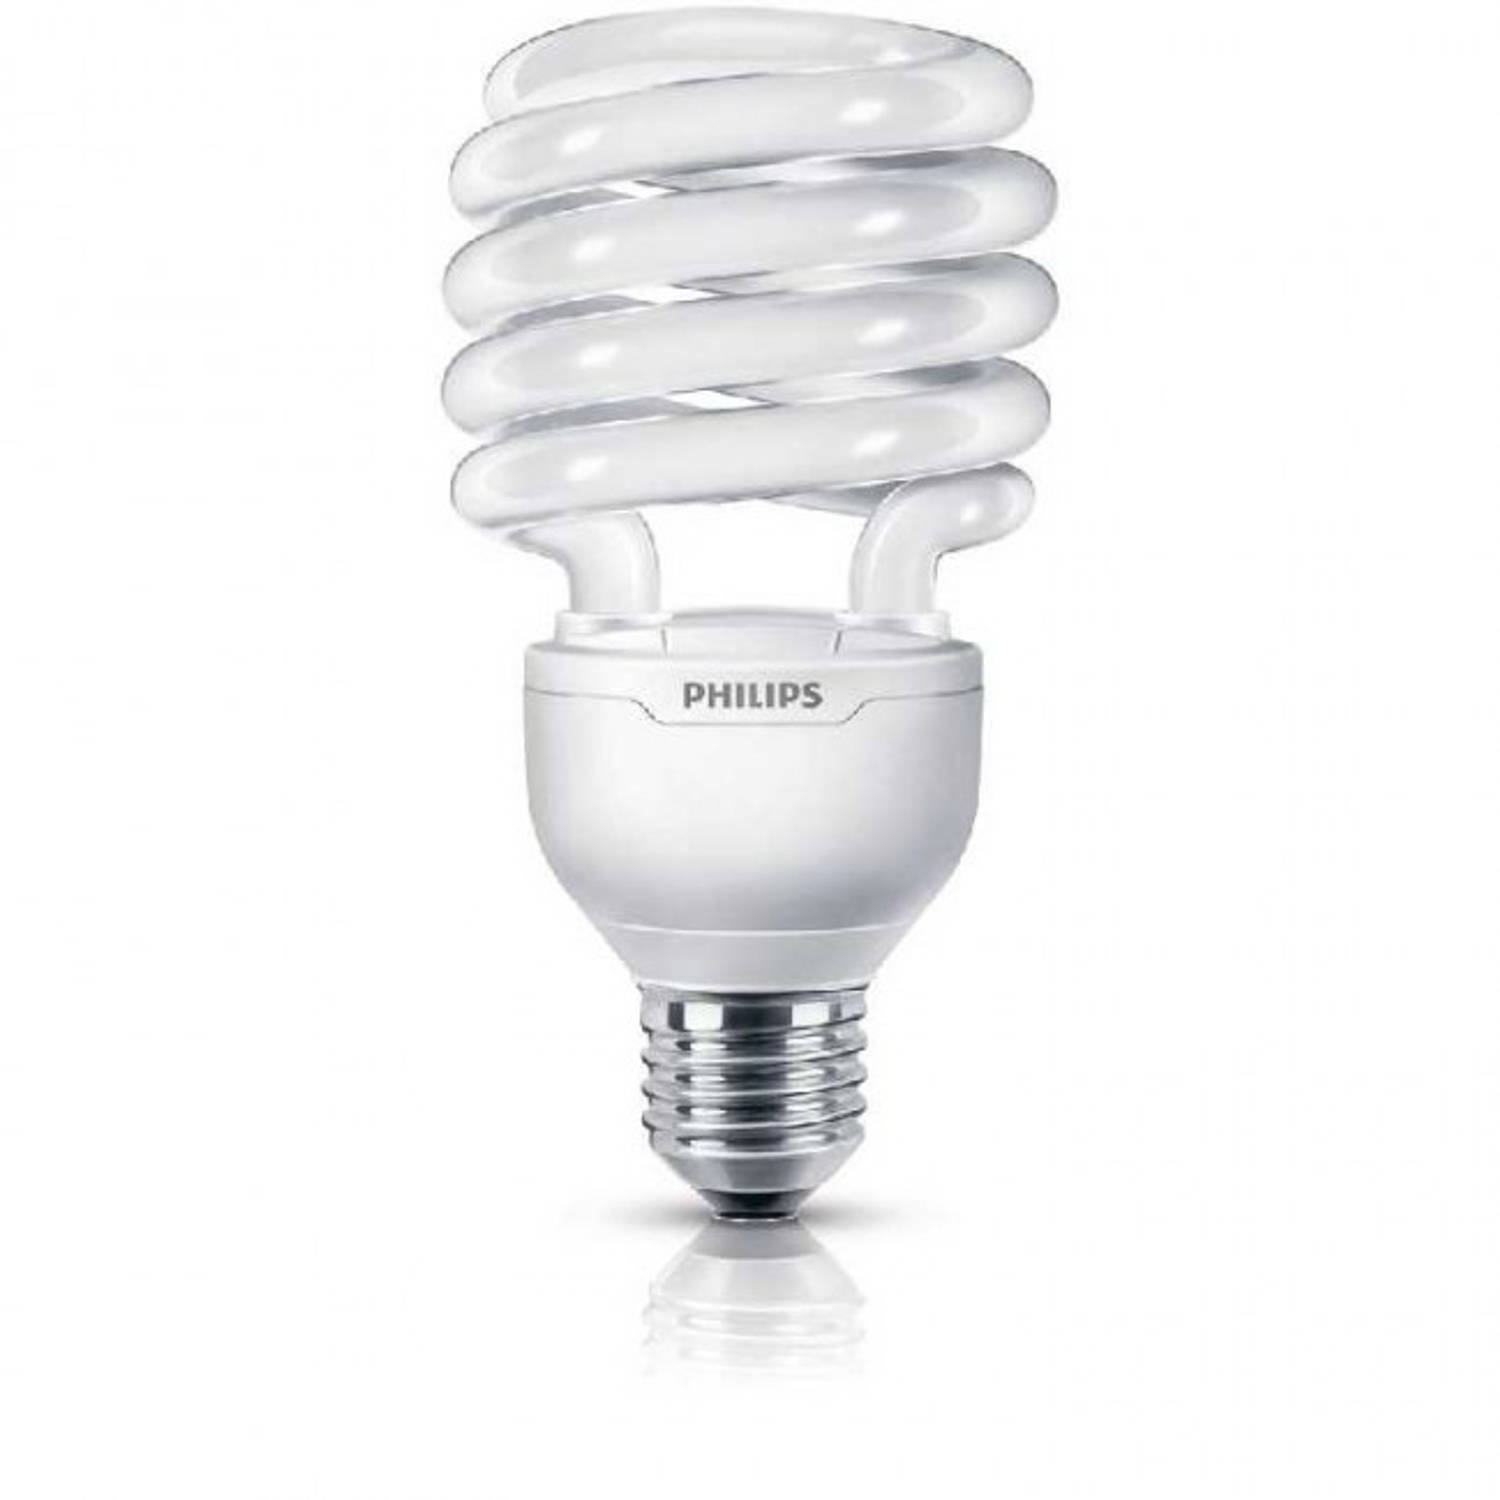 Image of Philips Tornado spaarlamp spiraal 32 W E27 warm wit